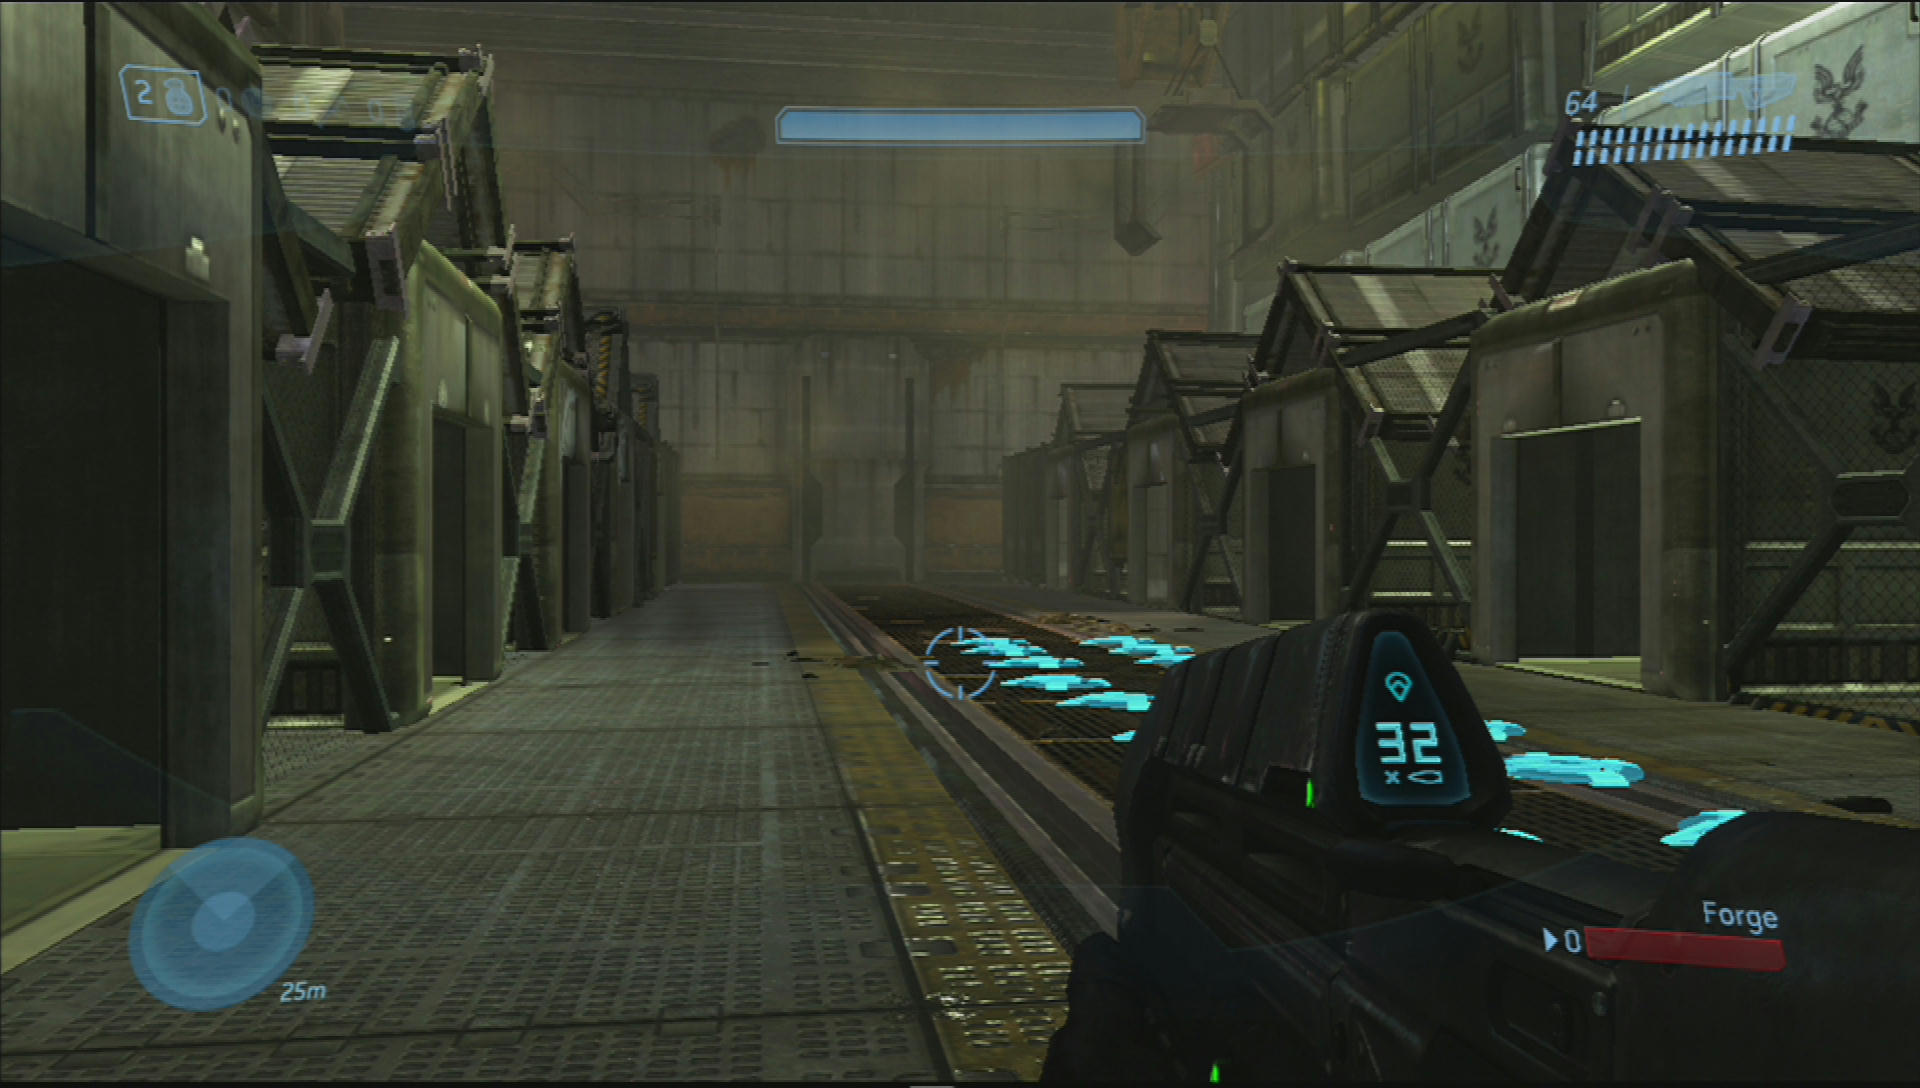 General] Old Custom Games w/Download Links - Halo 3 - Xbox